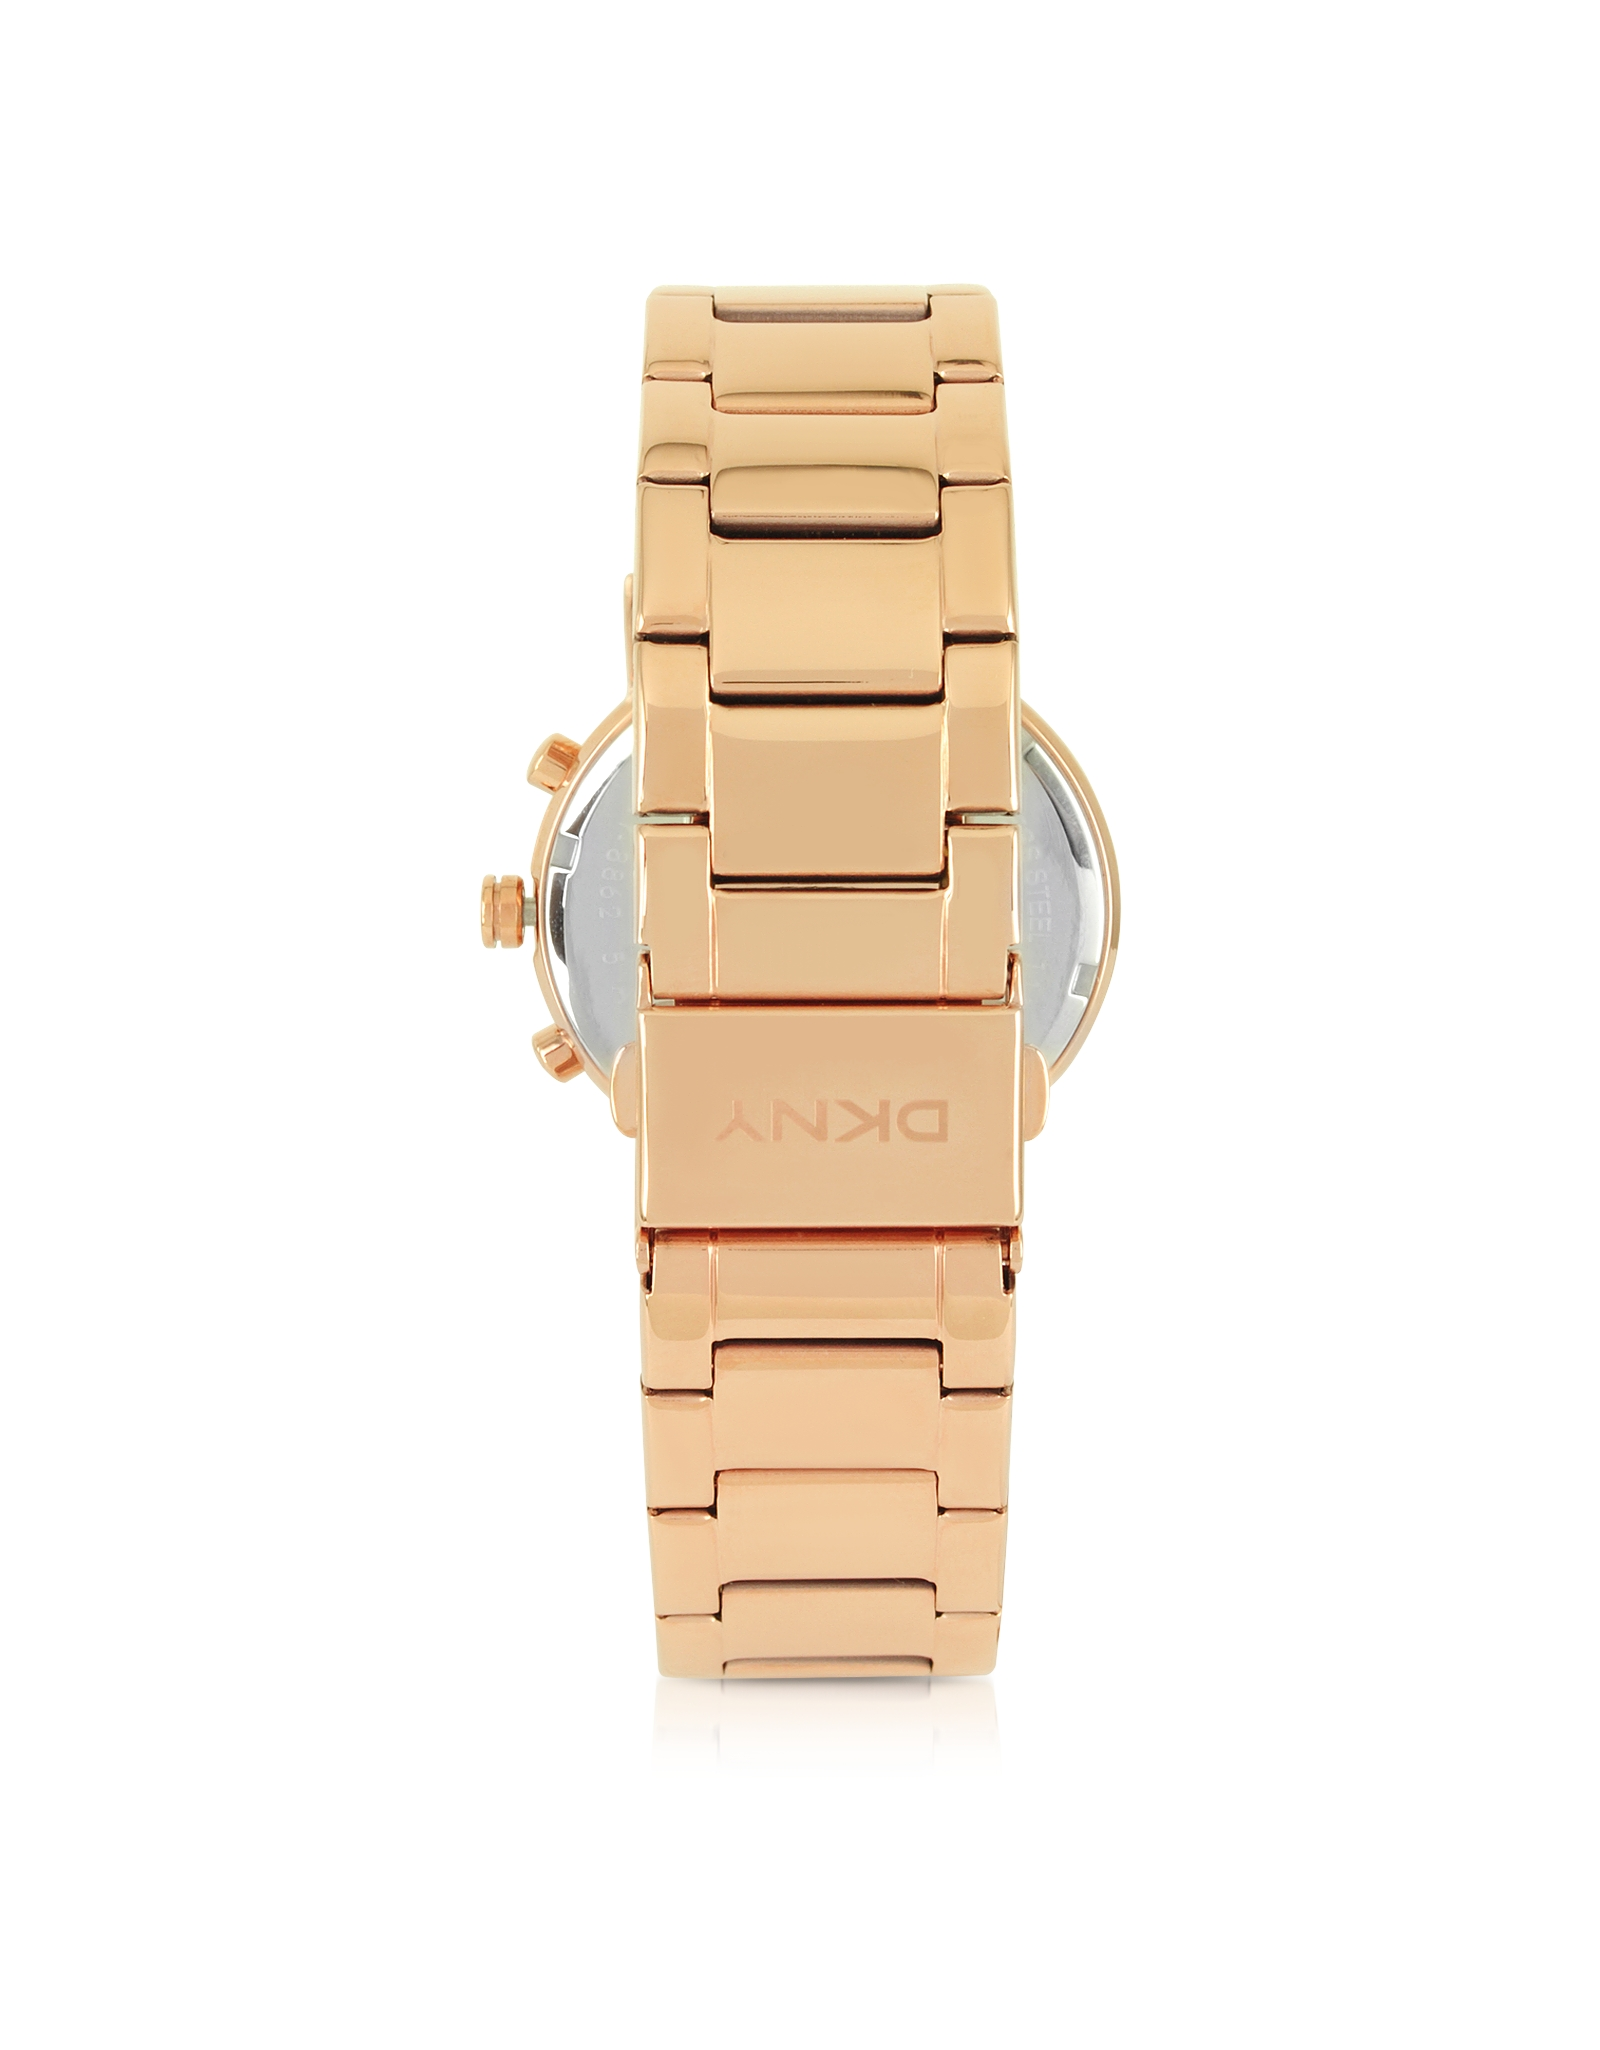 DKNY Soho Rose Golden Stainless Steel Chronograph Women's Watch